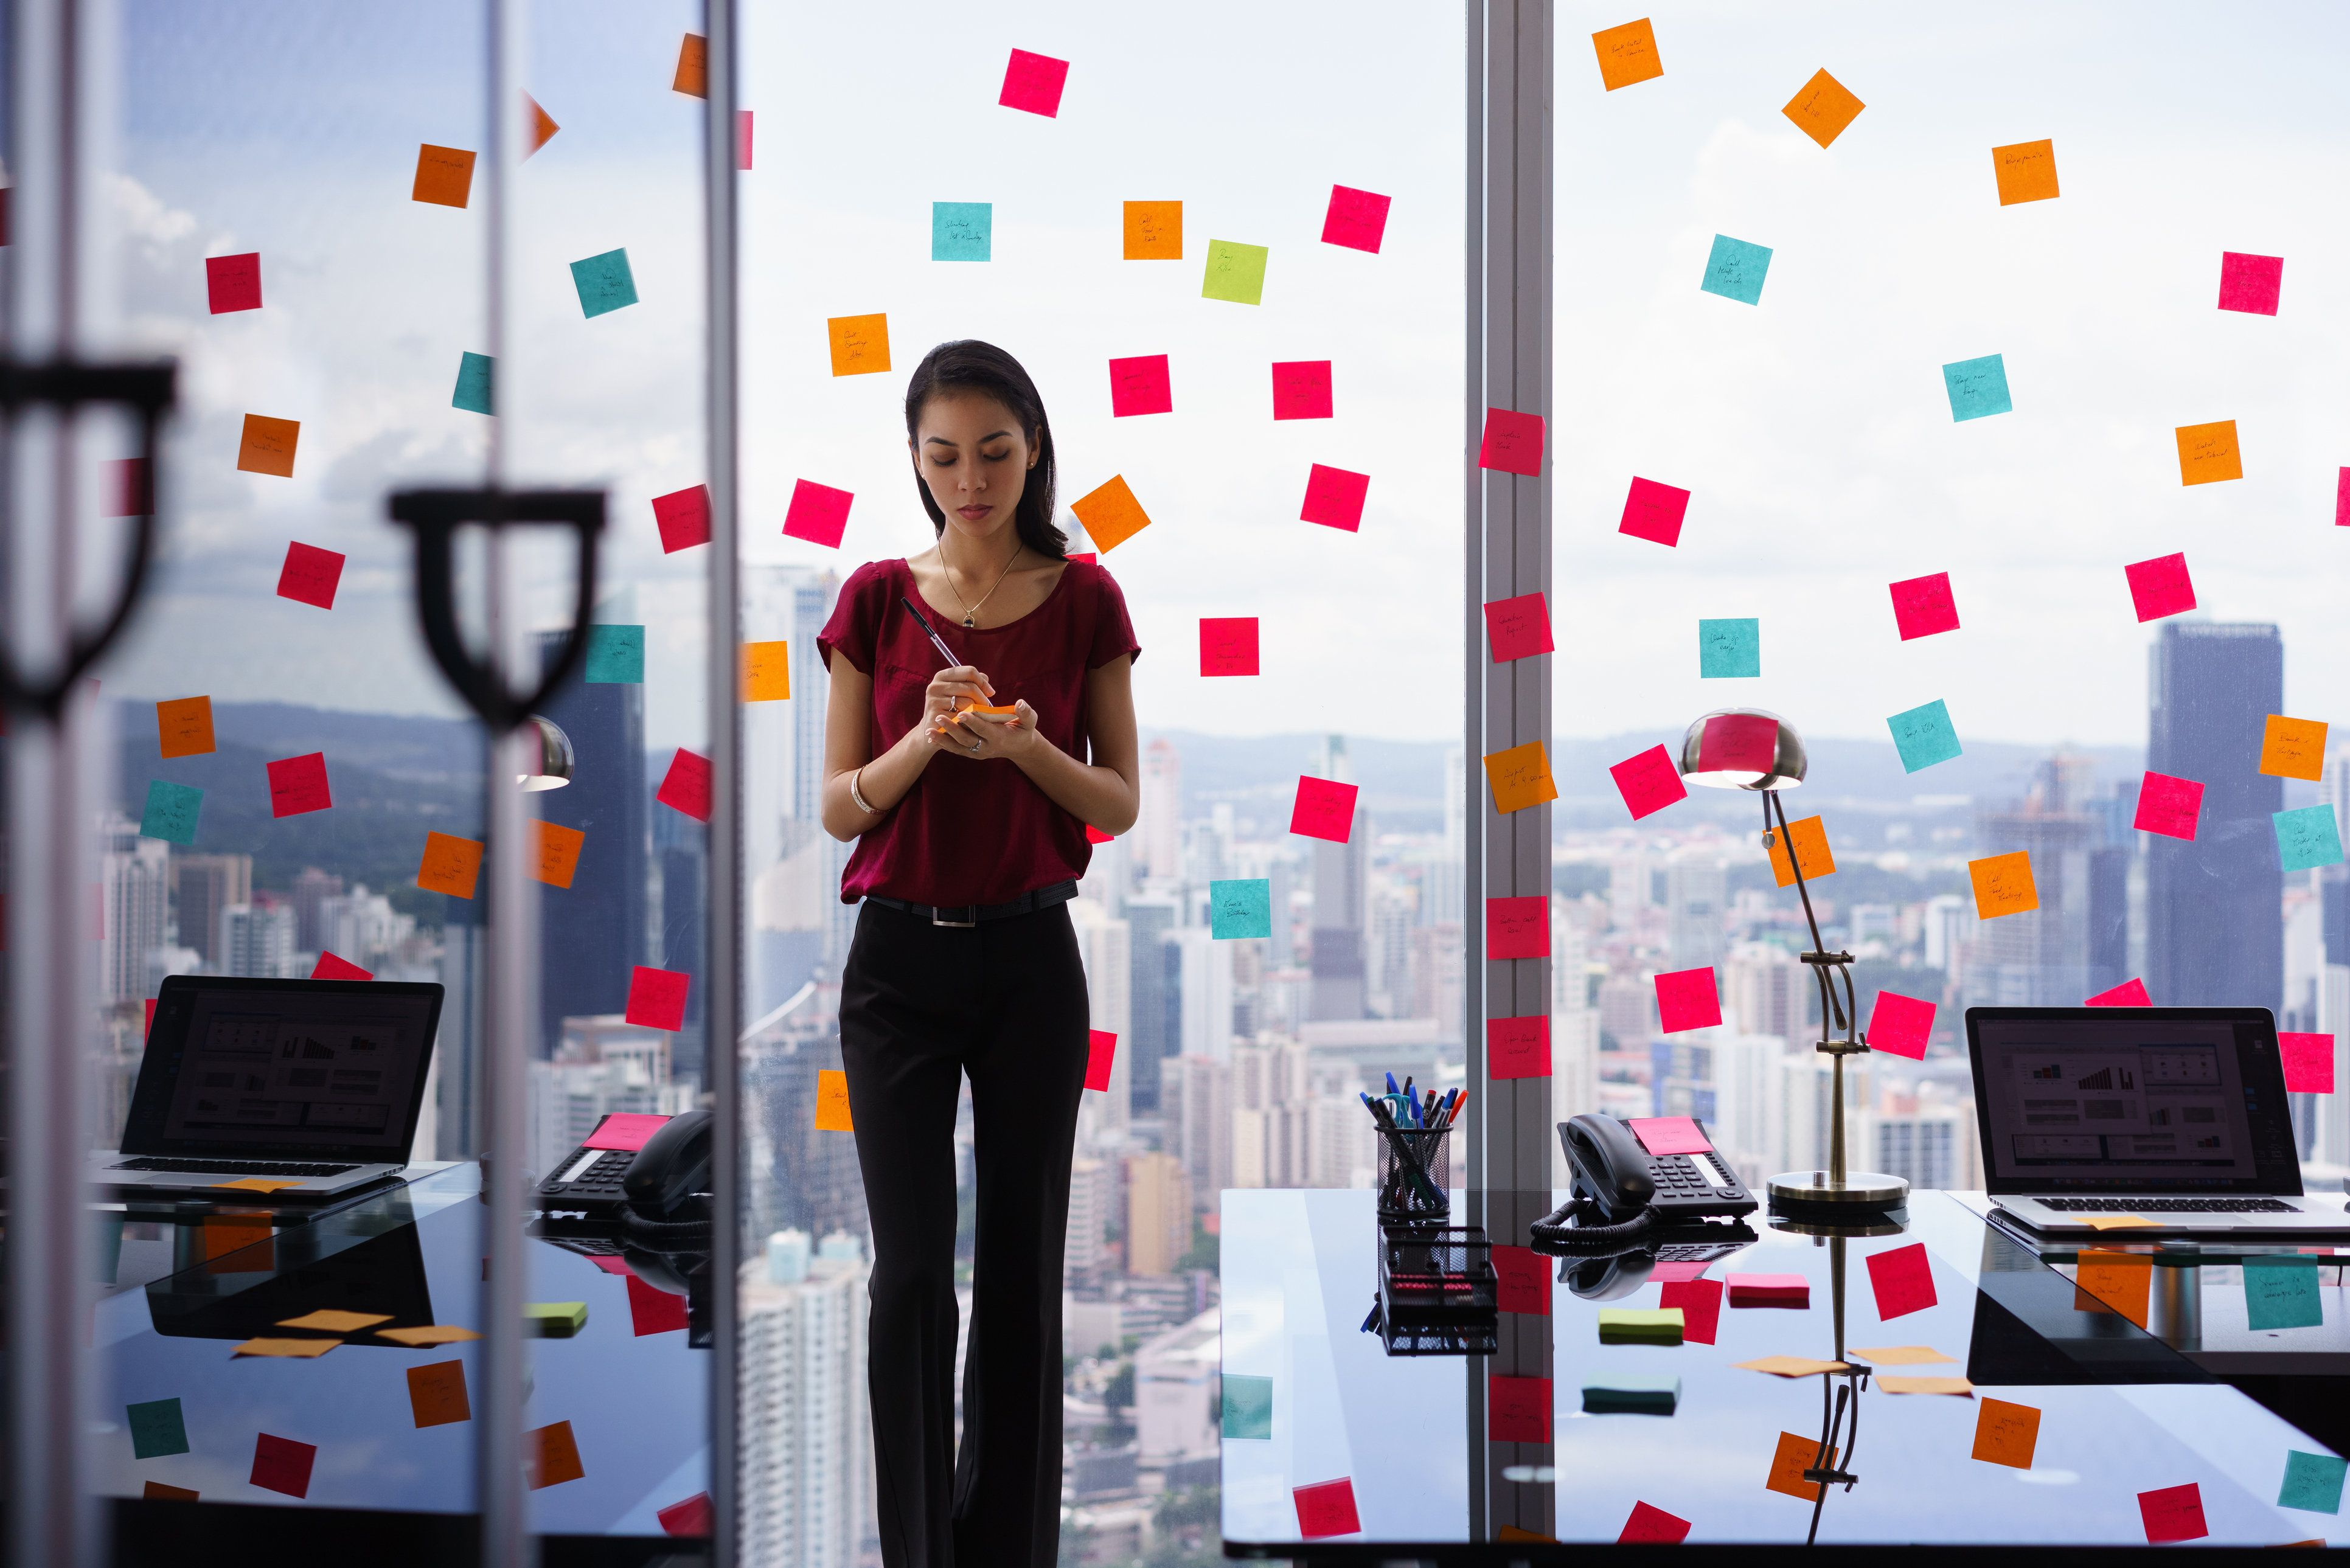 Mixed race secretary working in modern office in skyscraper, writing and sticking adhesive notes with tasks on window.